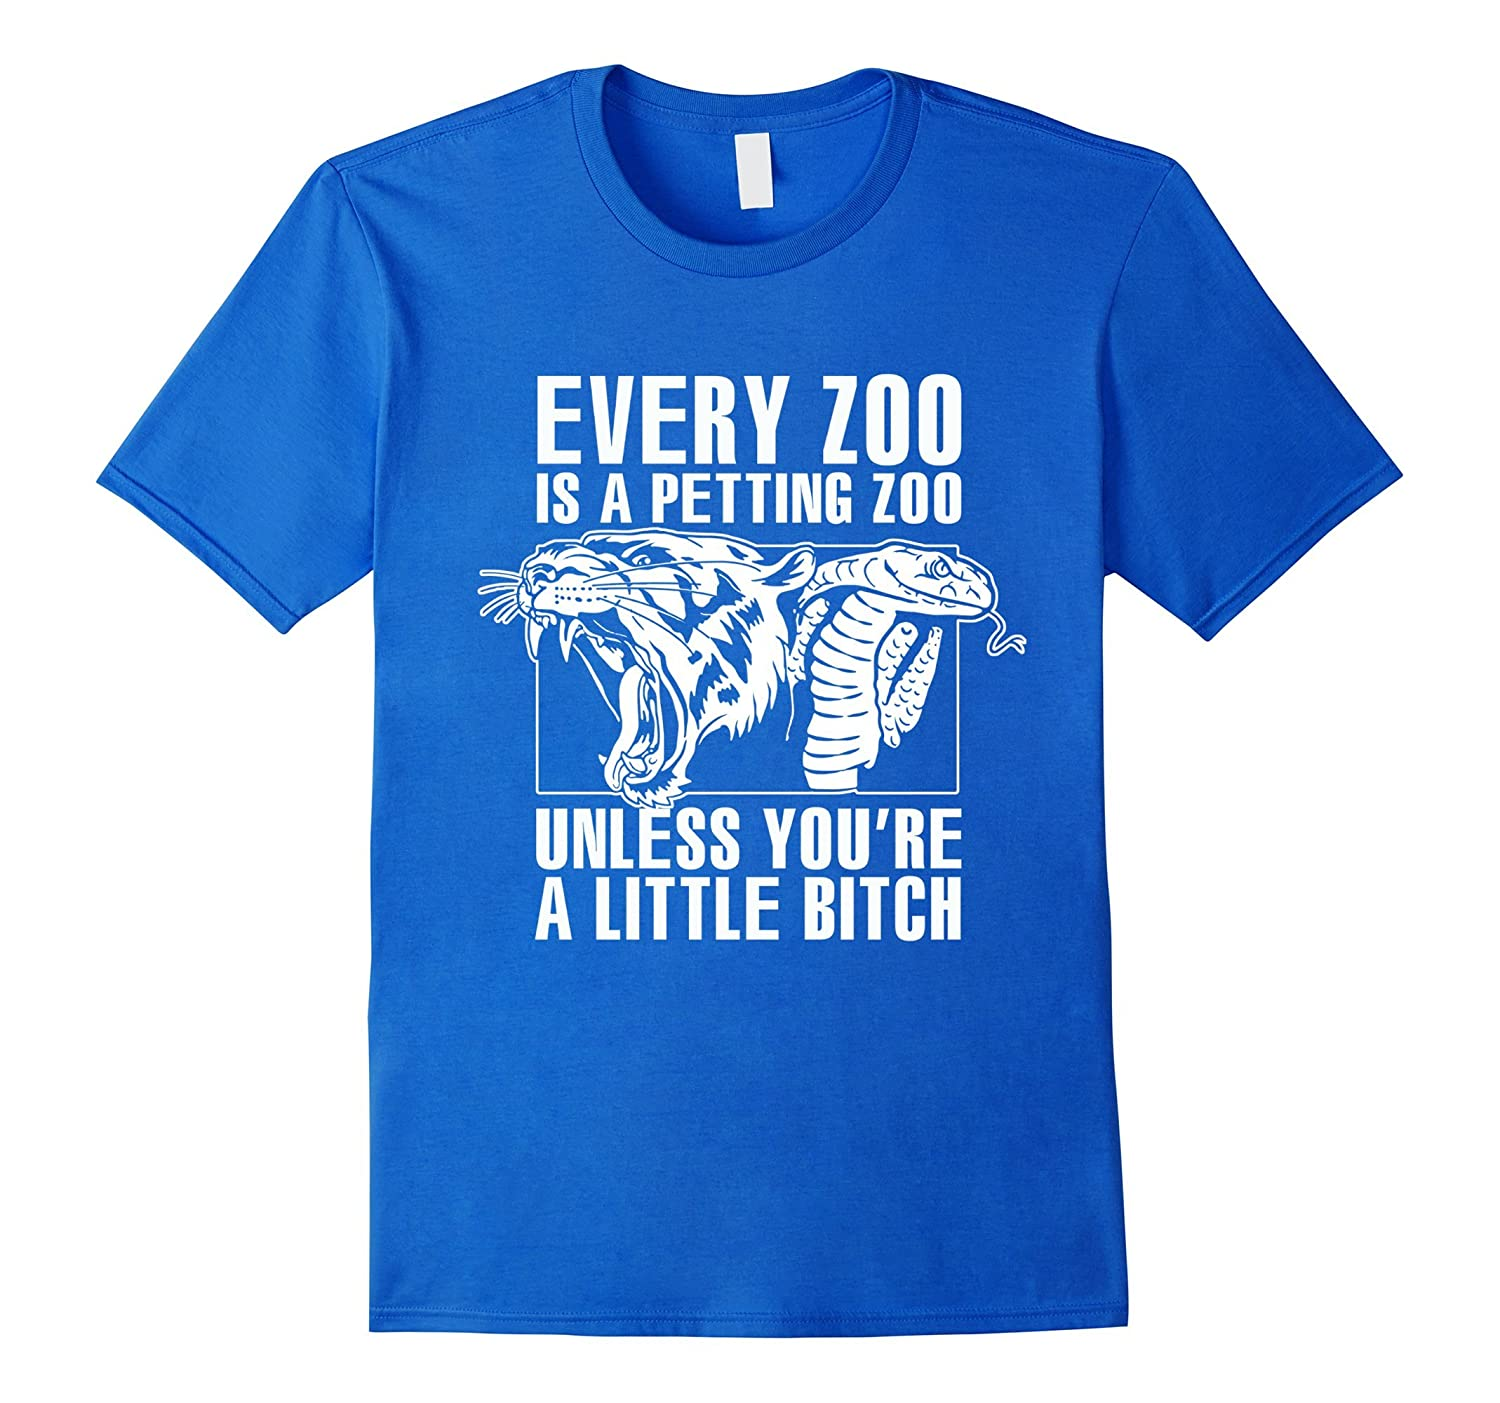 Every Zoo is a Petting Zoo Shirt Unless youre a bitch-RT